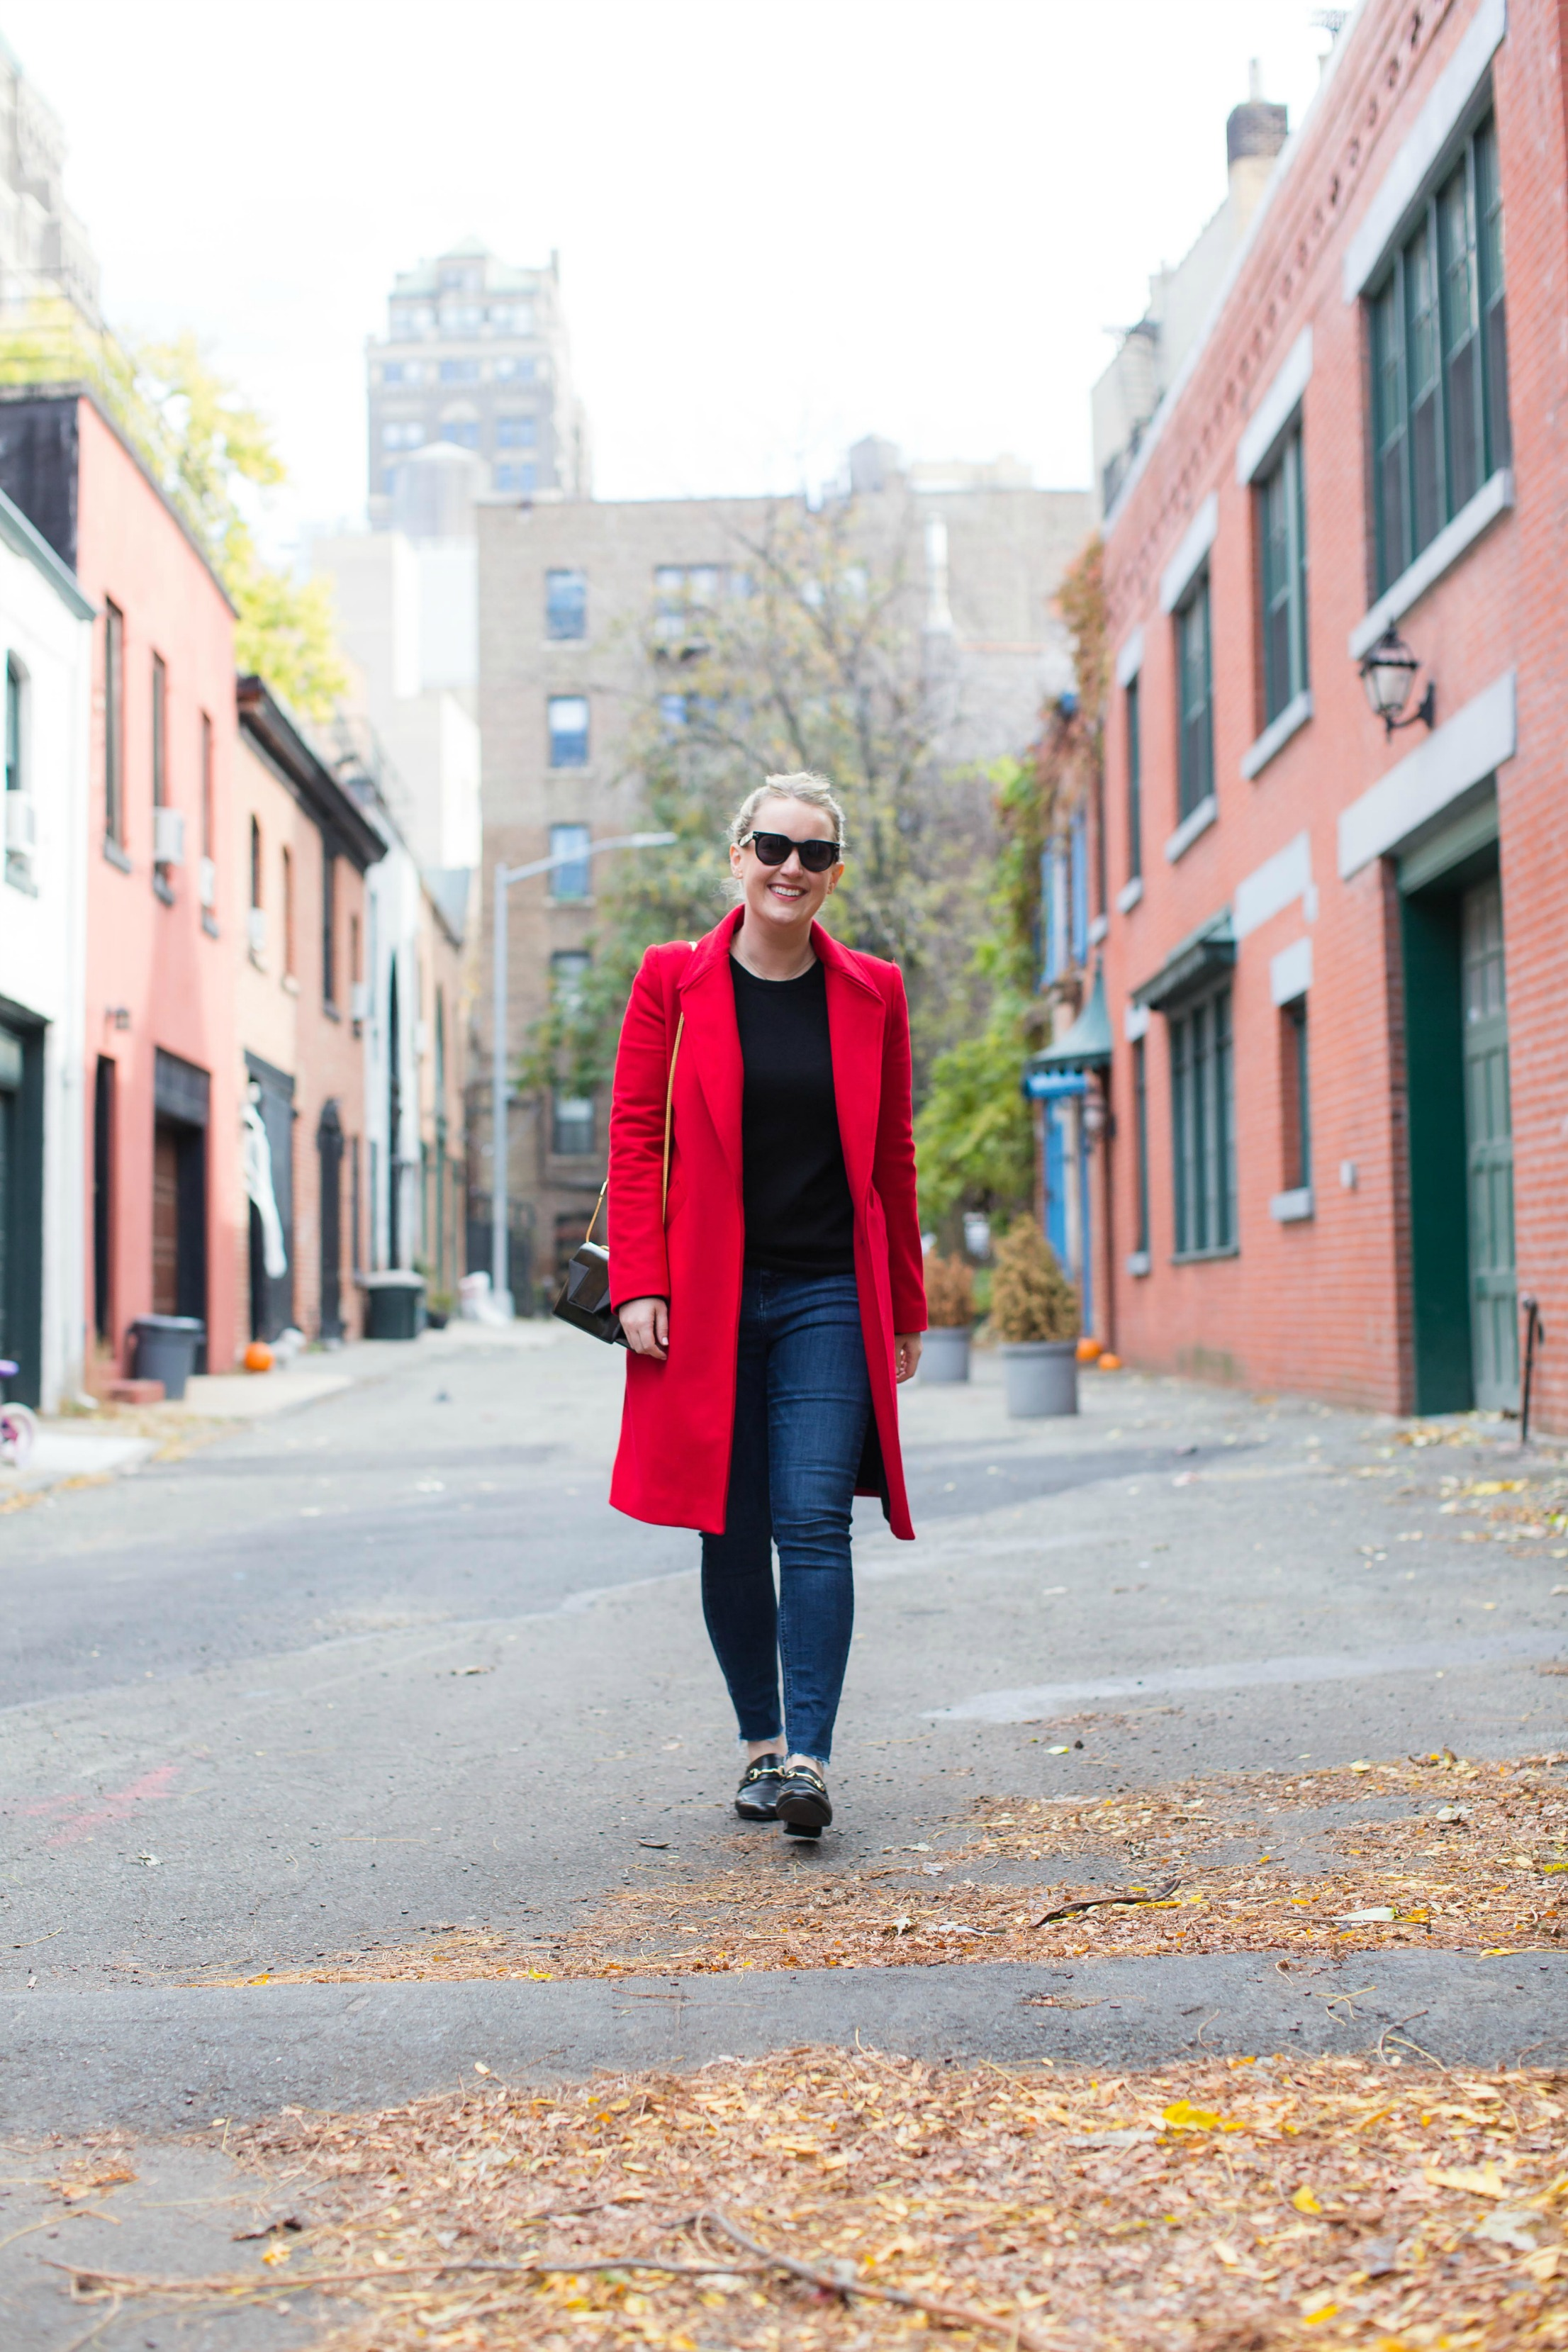 Meghan Donovan styles a red coat